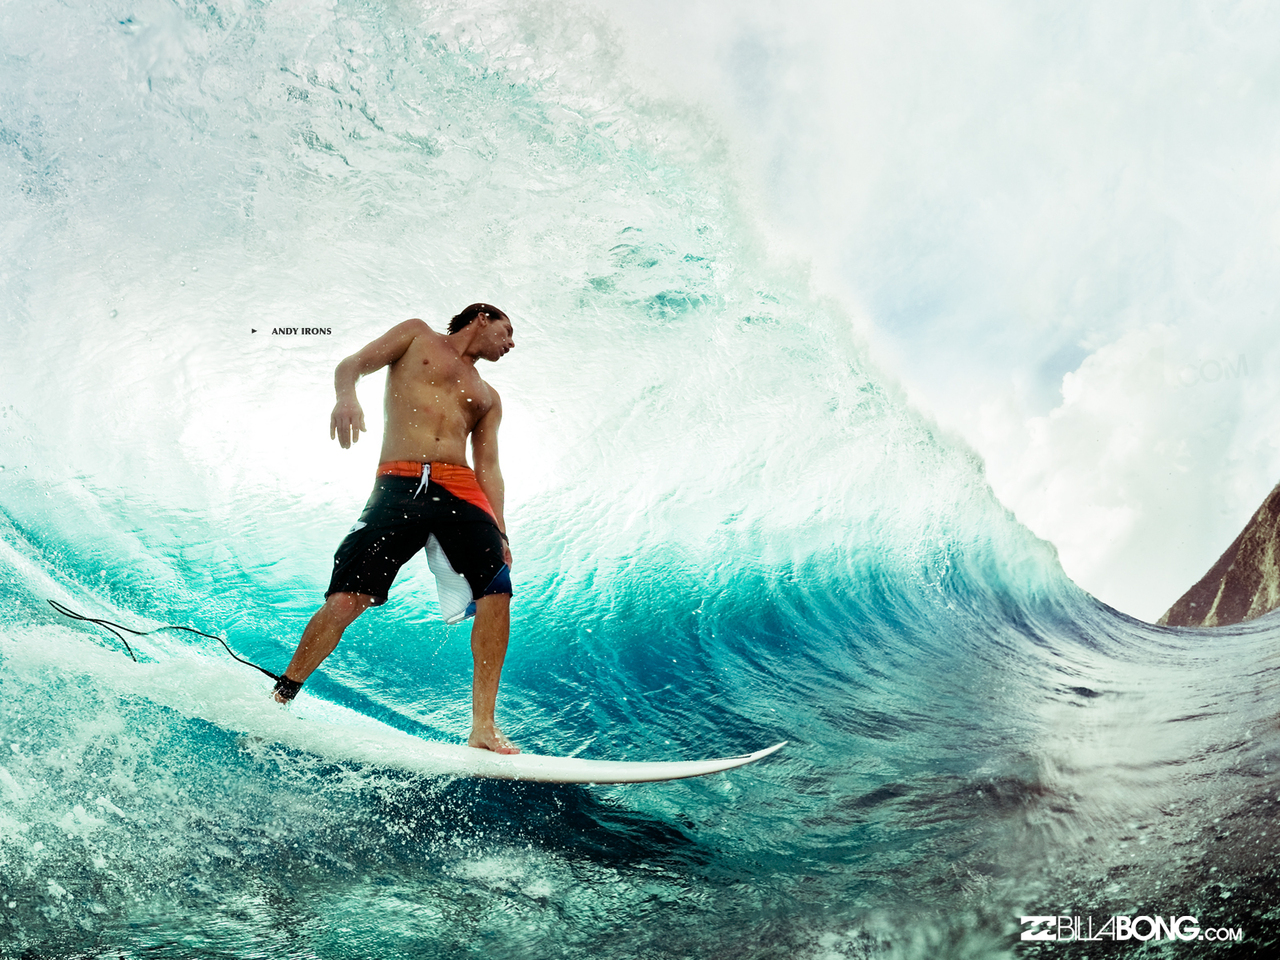 The best surfing wallpapers 1280x960